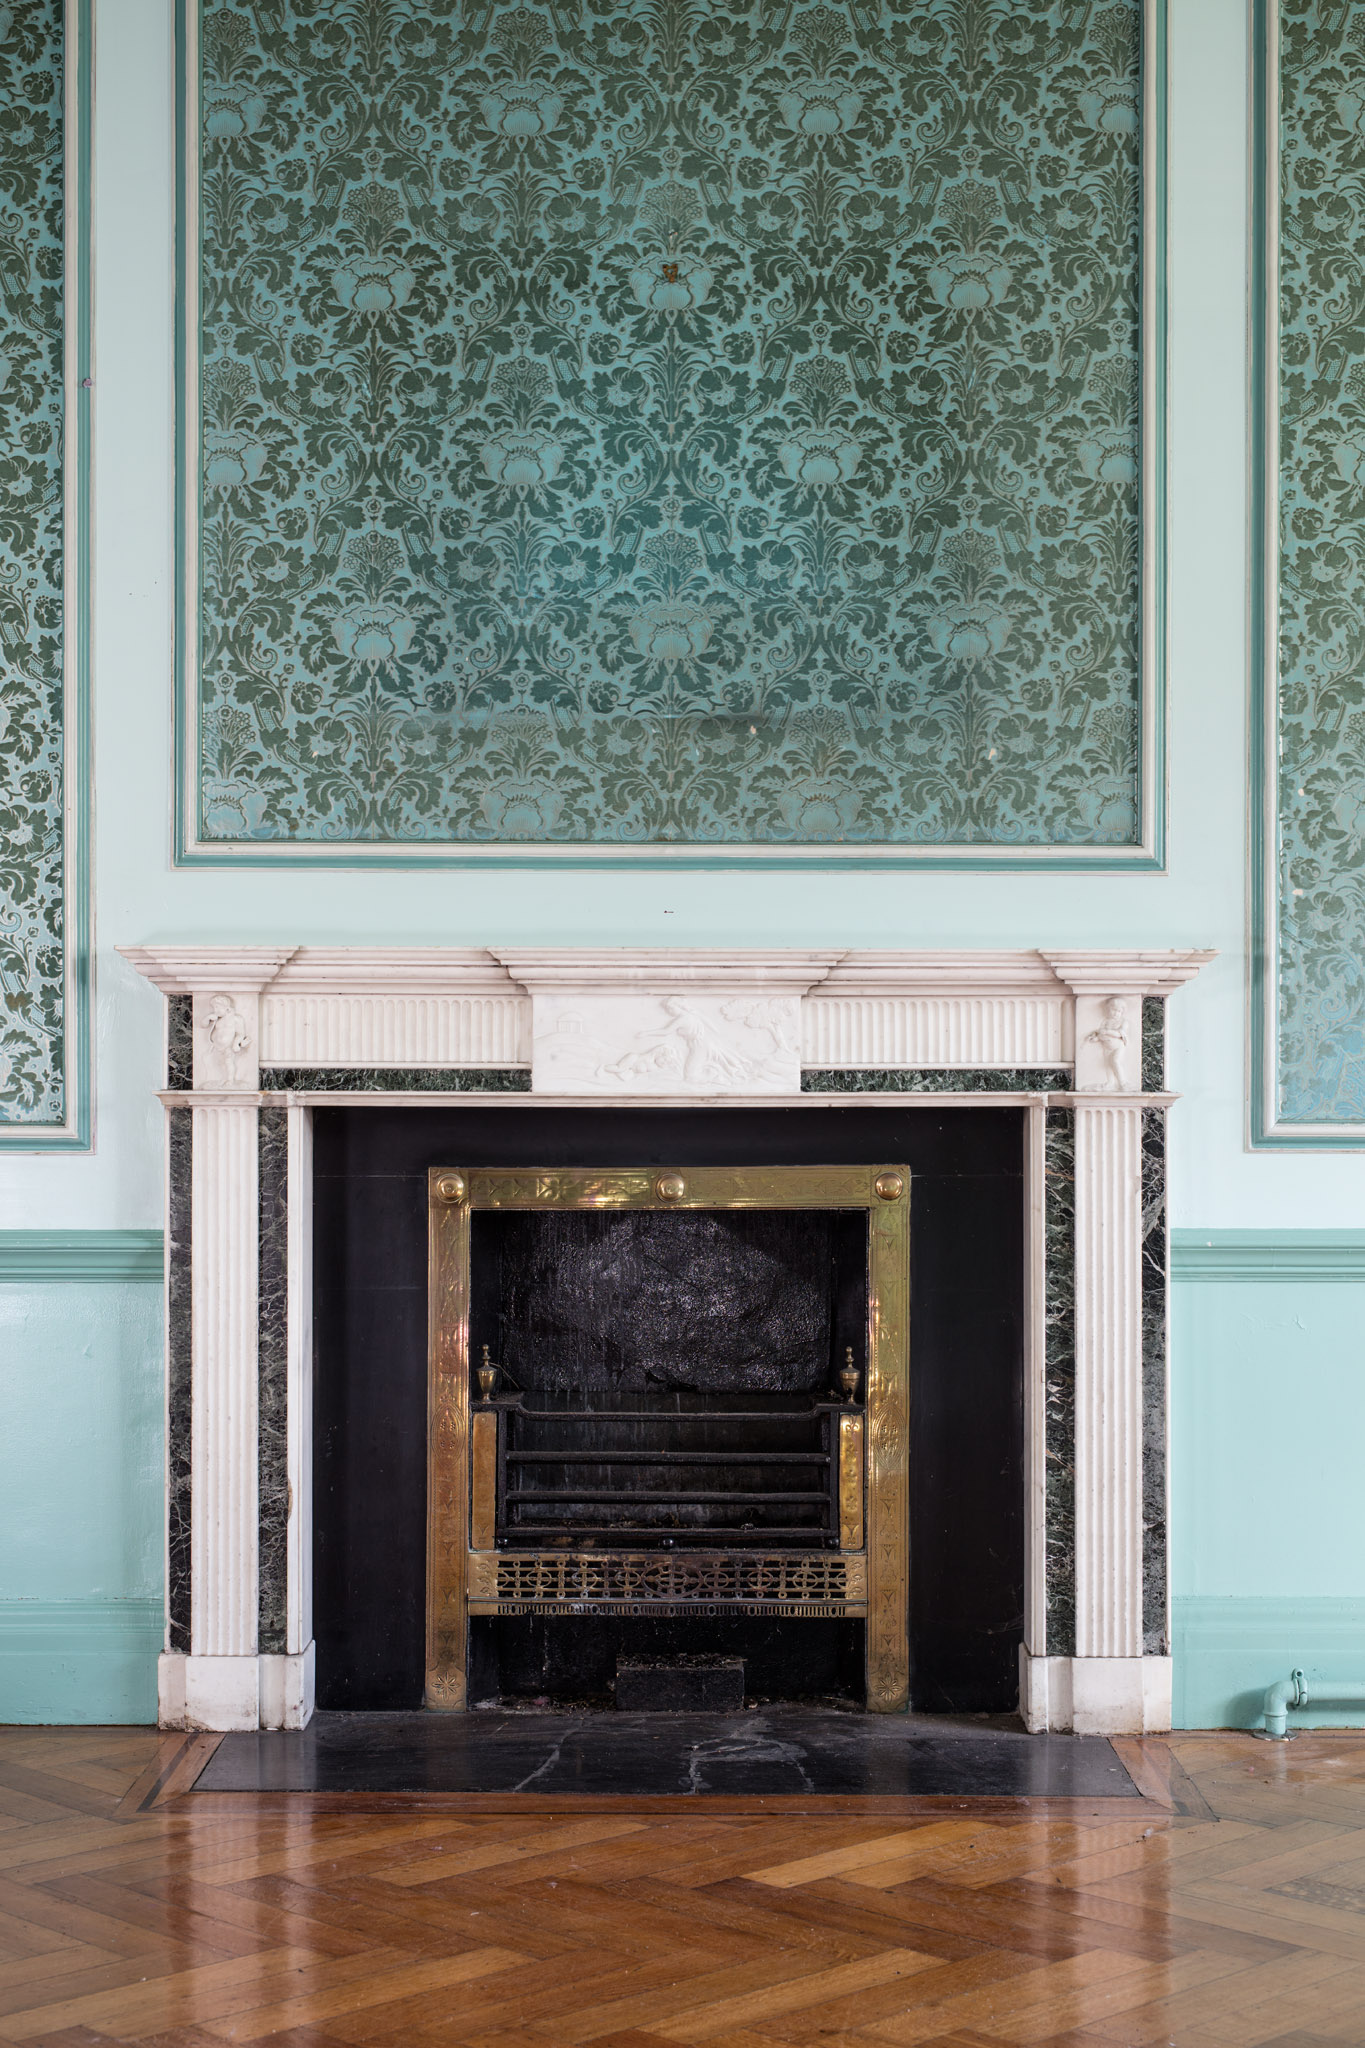 Architectural And Interiors Photography And Video Edwardian - Edwardian house interiors